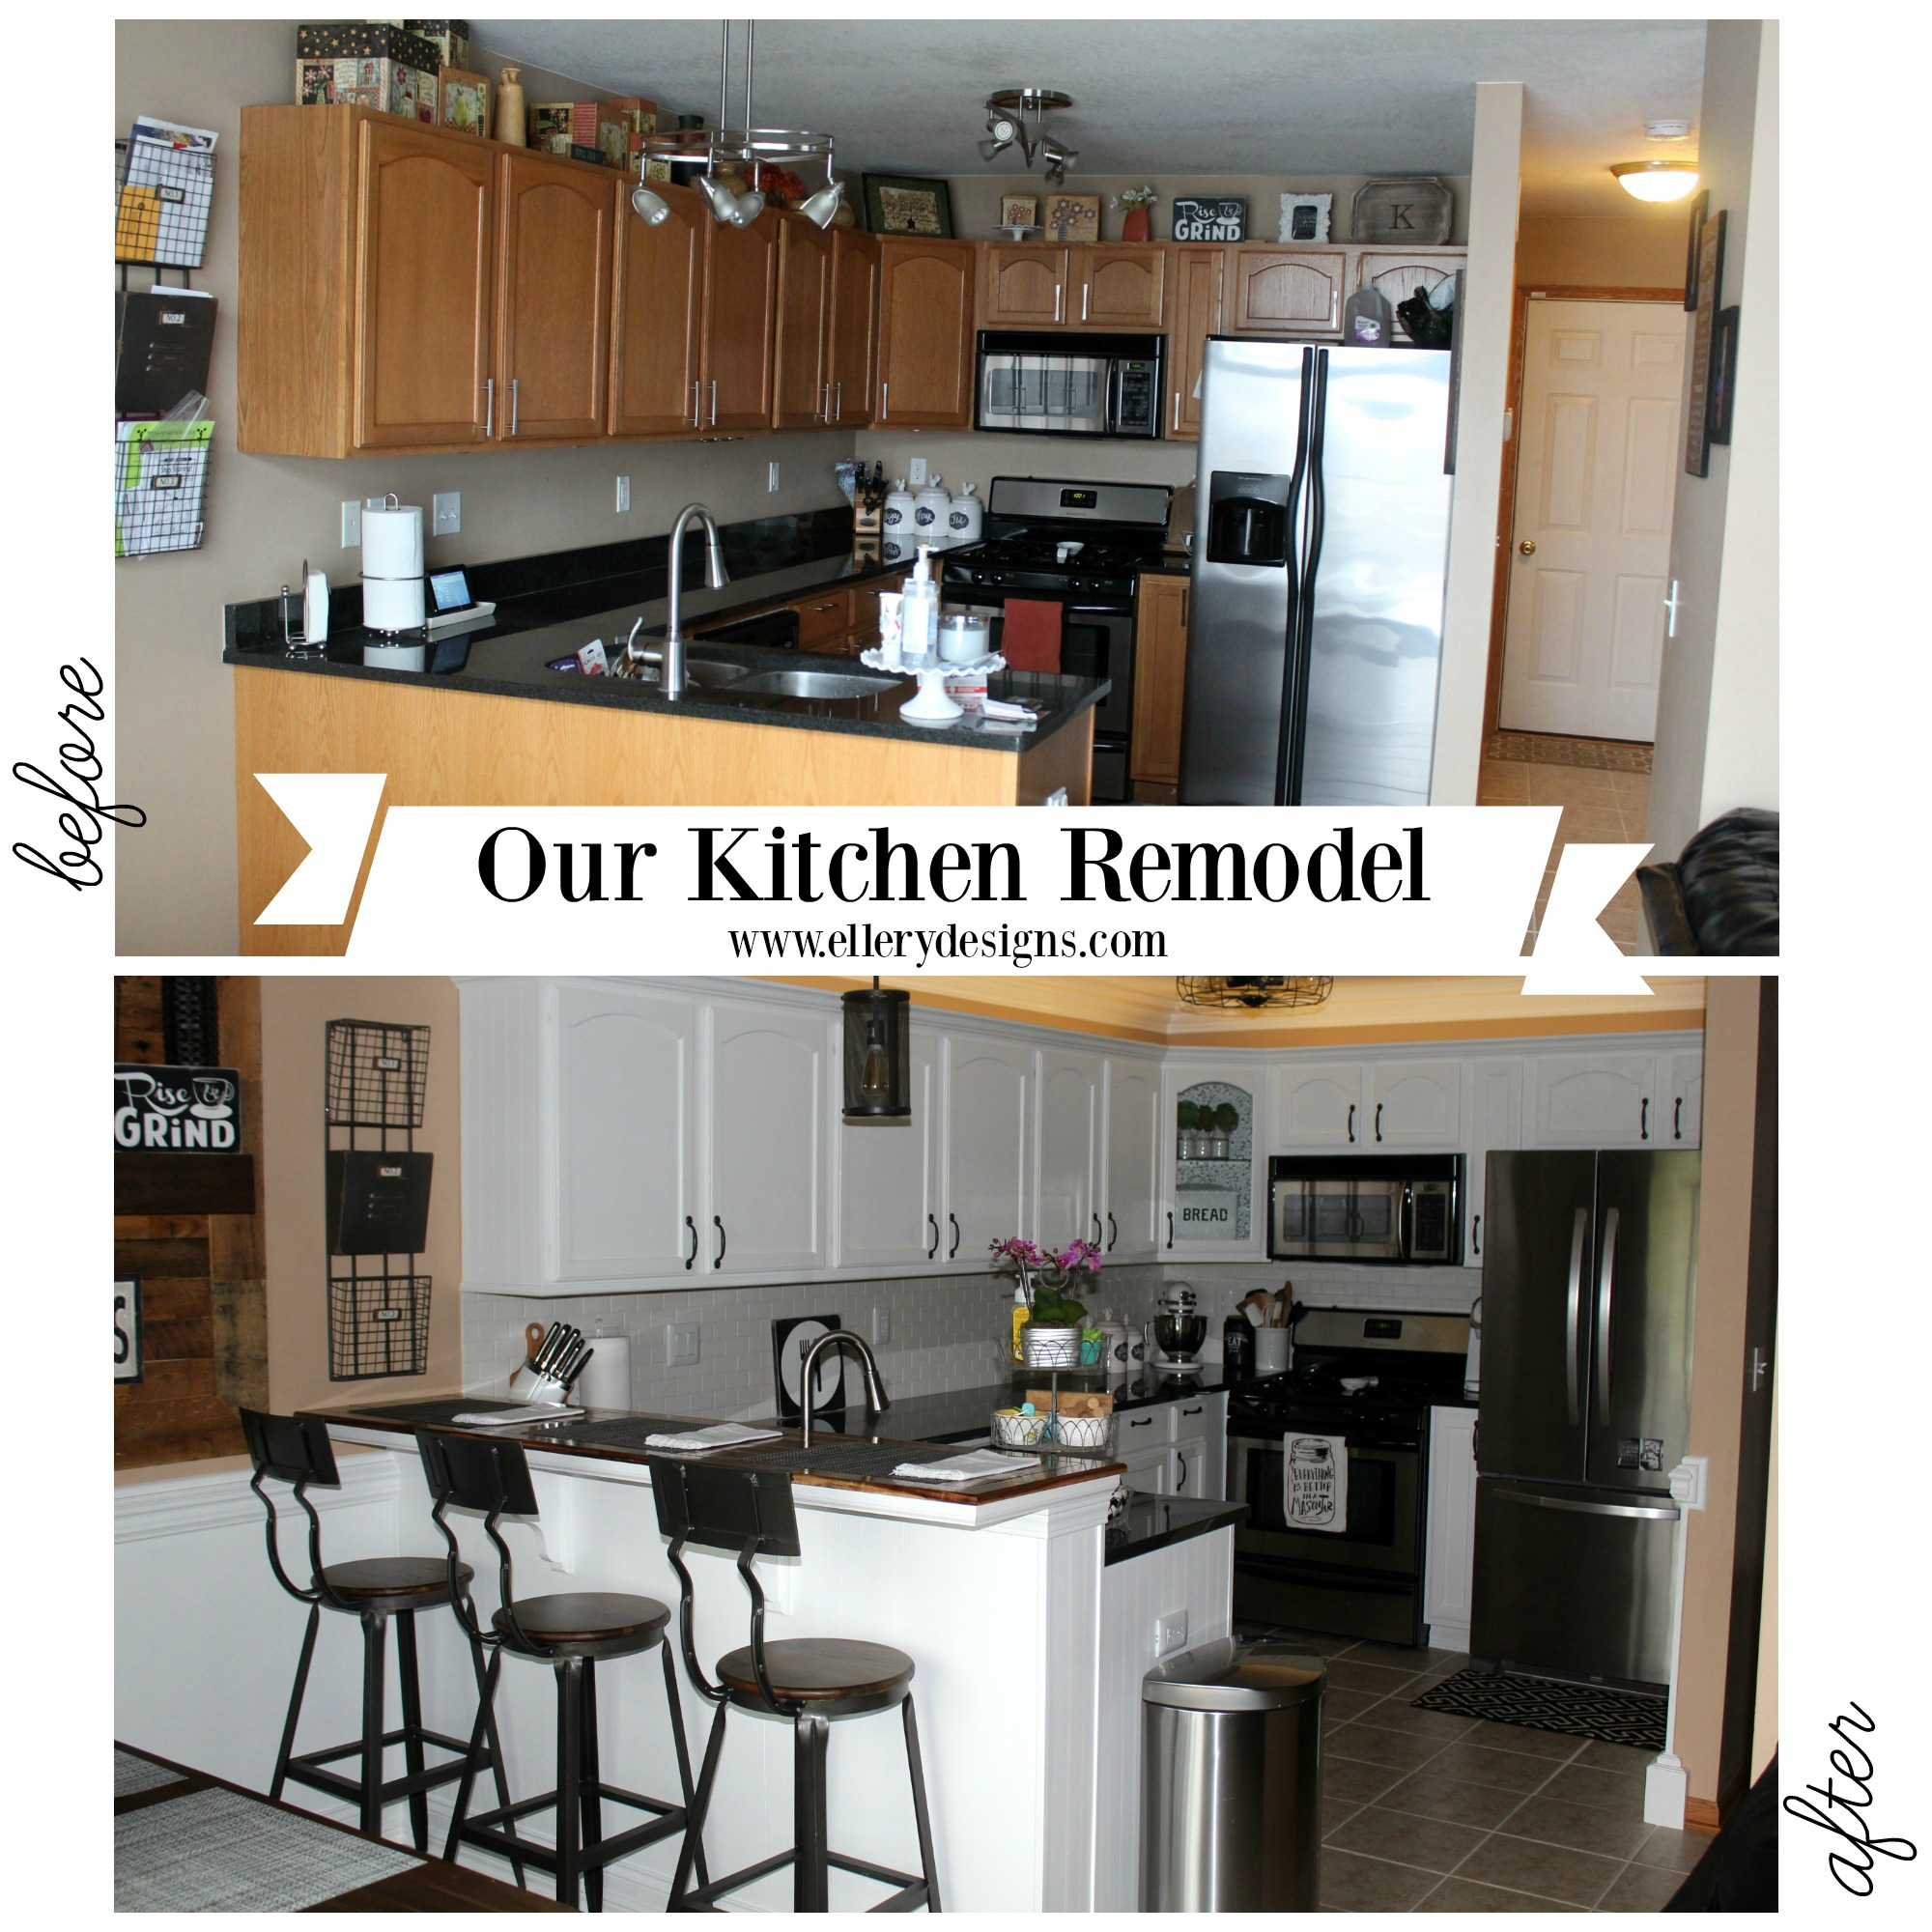 Our diy kitchen remodel the full reveal ellery designs for Complete kitchen remodel price